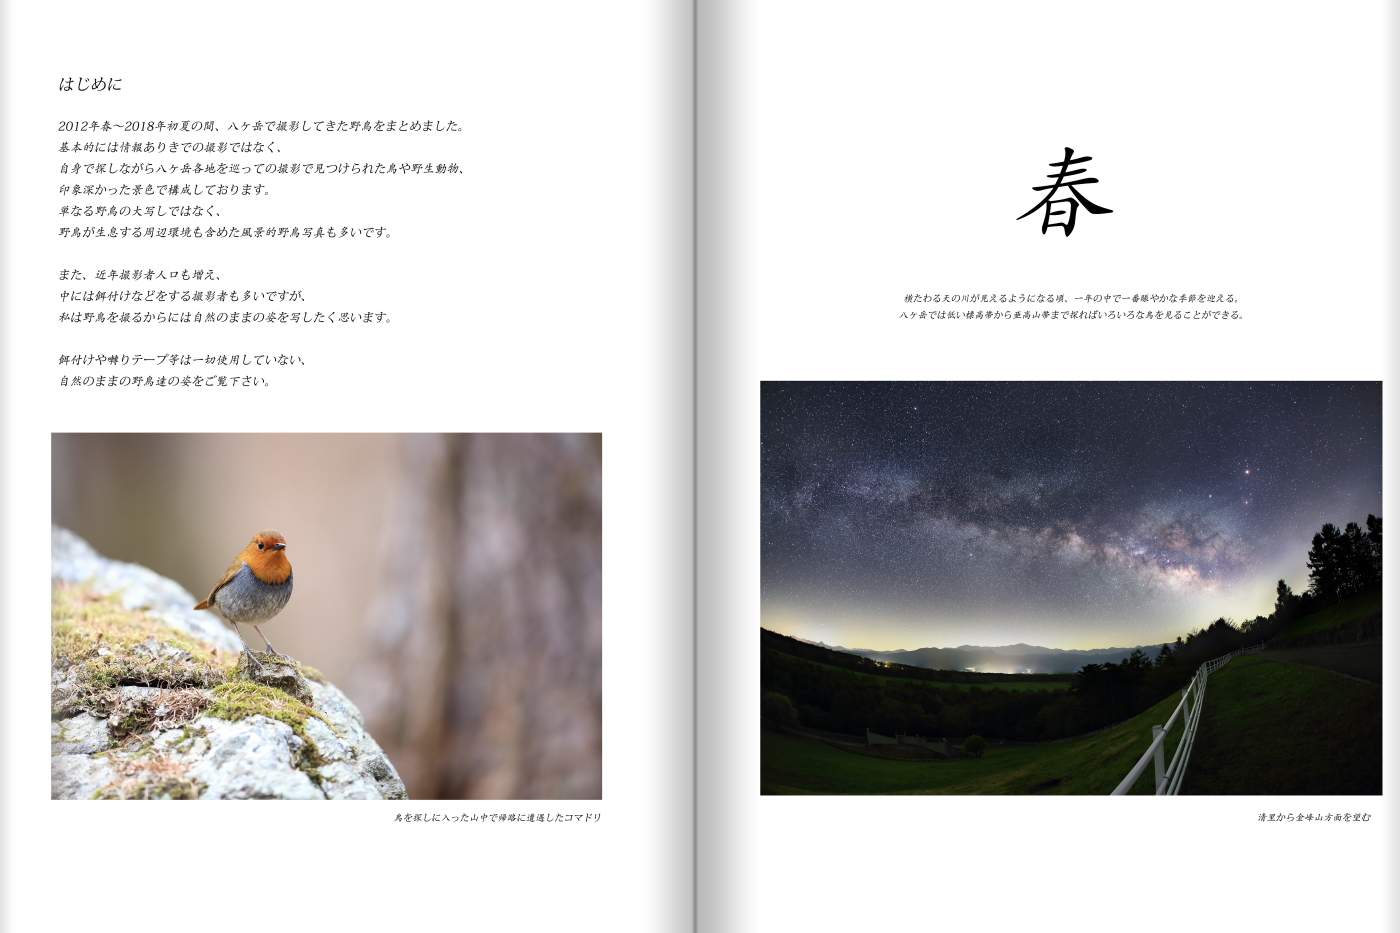 002_1-2page